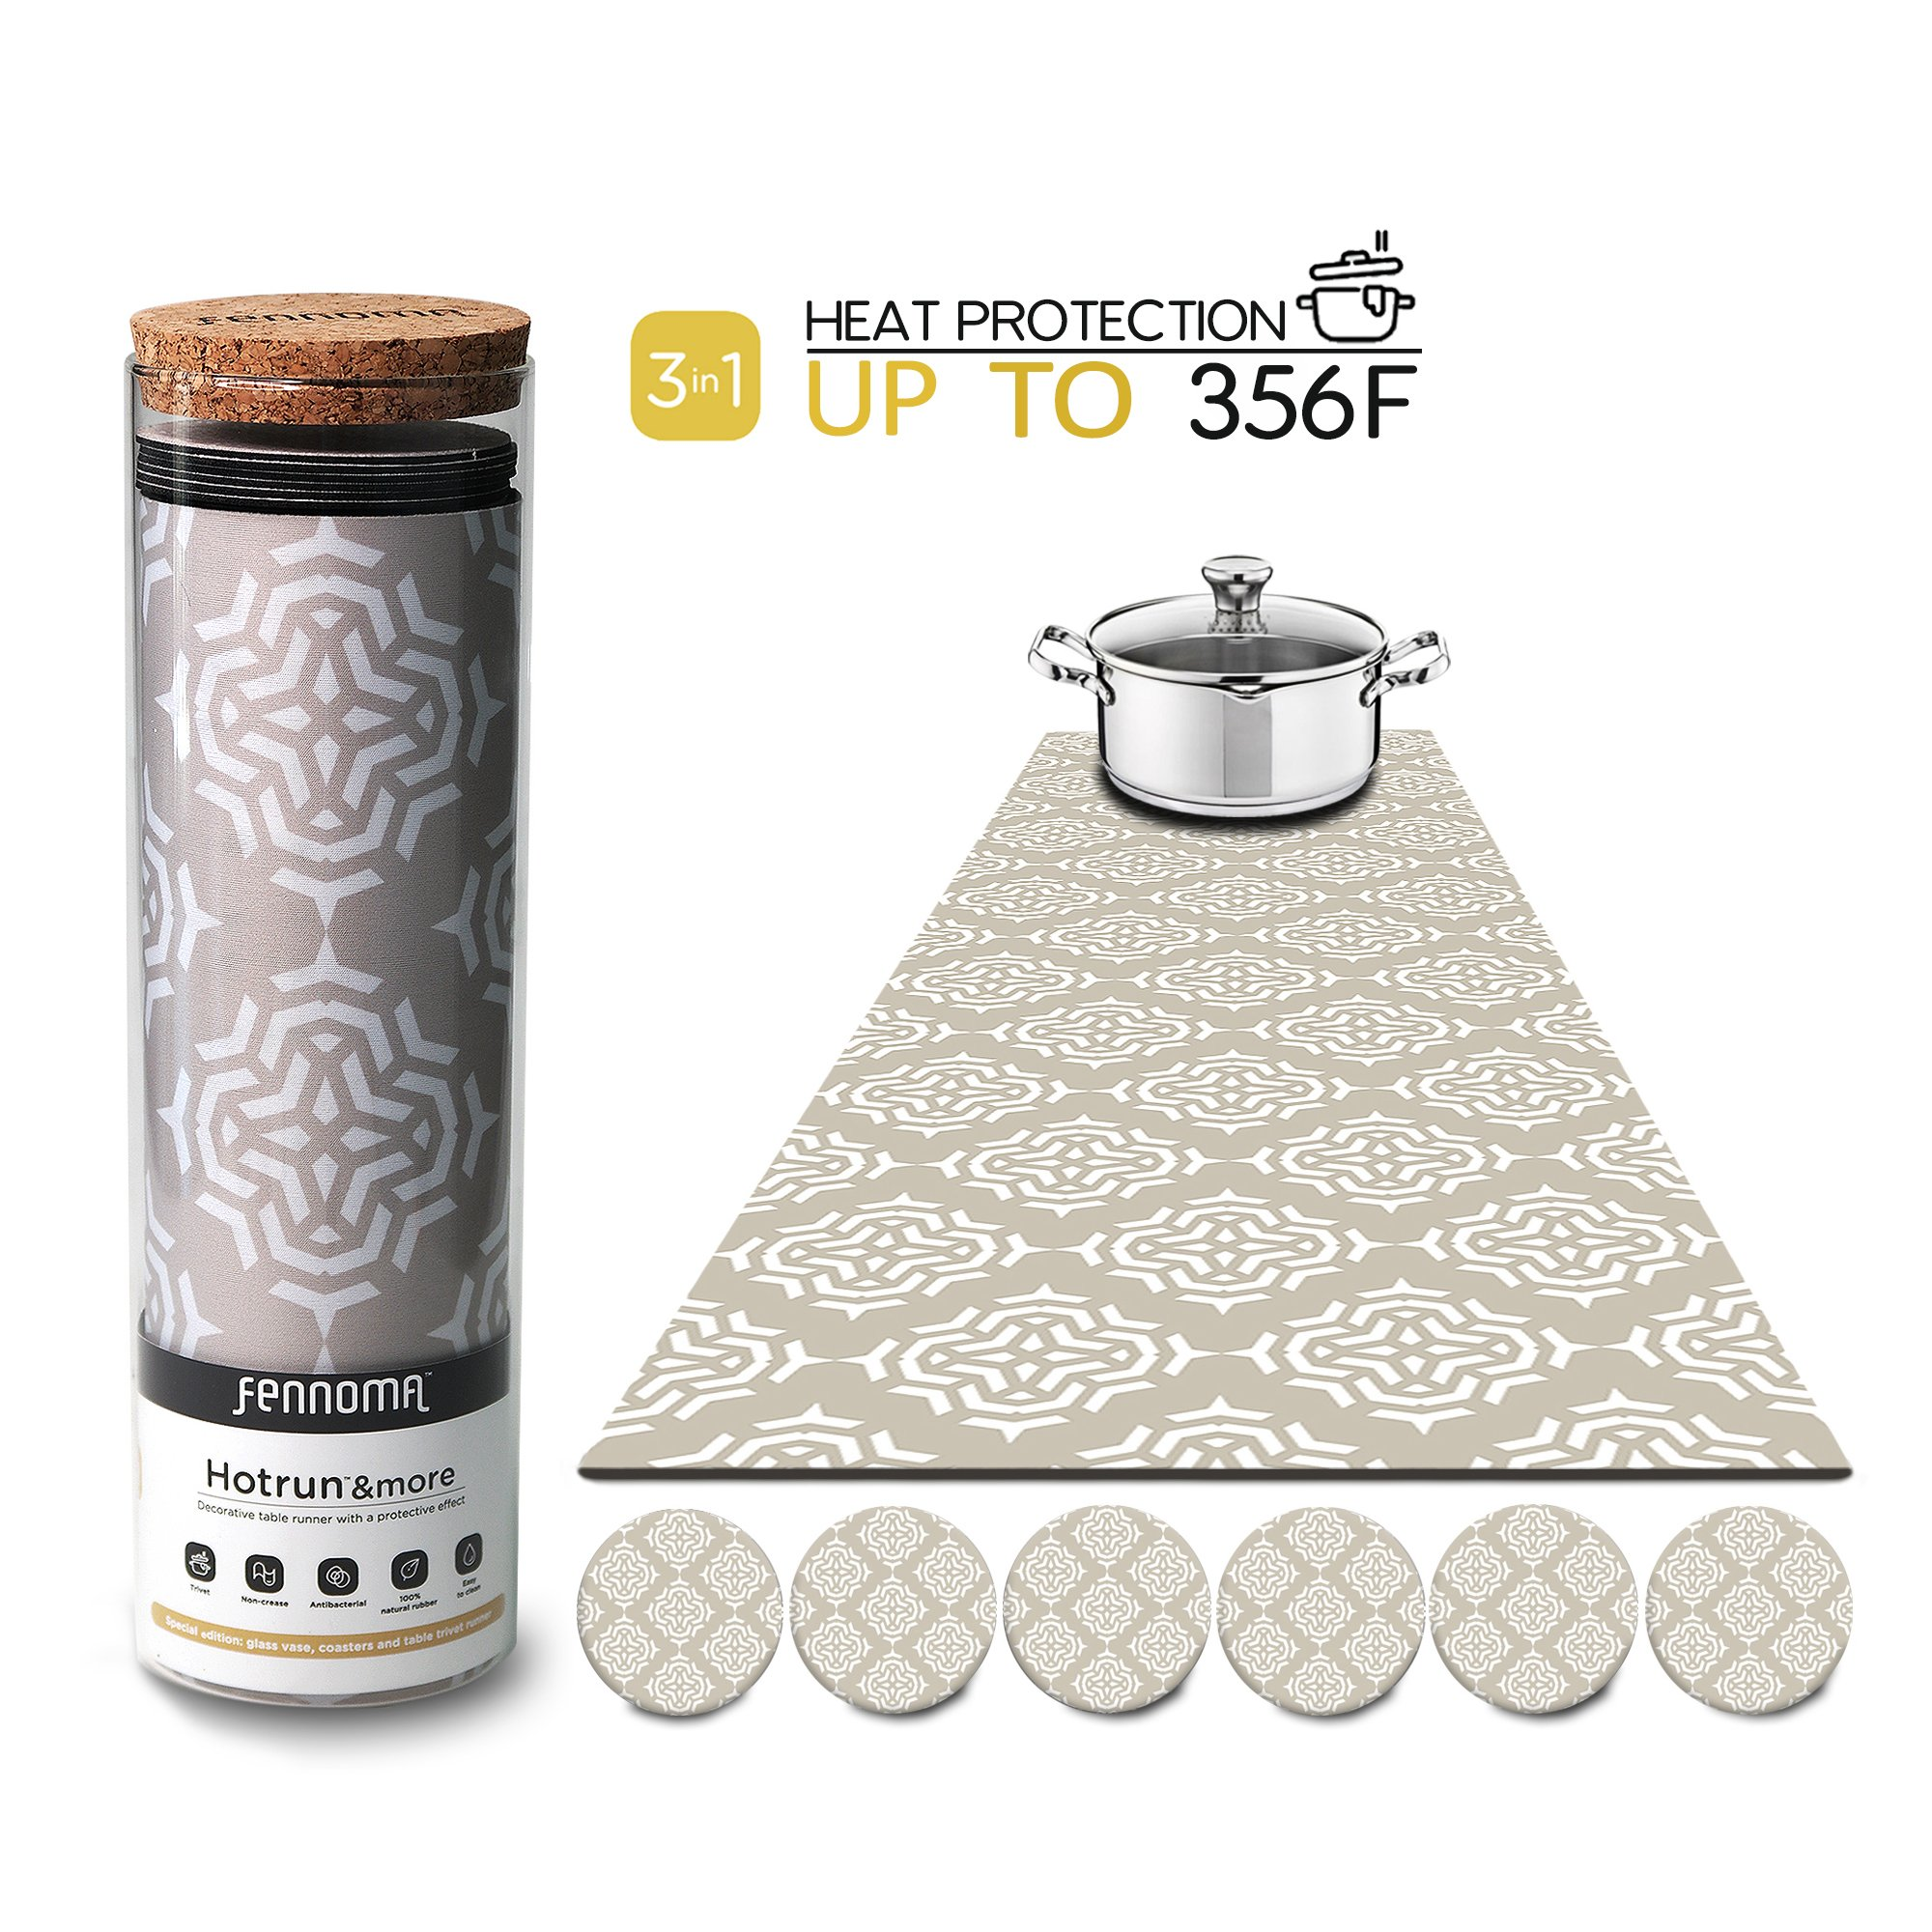 Hotrun - 3 in 1 - Trivet and Decorative Table Runner With Coasters (6 pcs) Handles Heat Up to 356F, Anti Slip, Waterproof, and Convenient for Hot Dishes and Pots + Glass Vase (Floral cream) by Fennoma